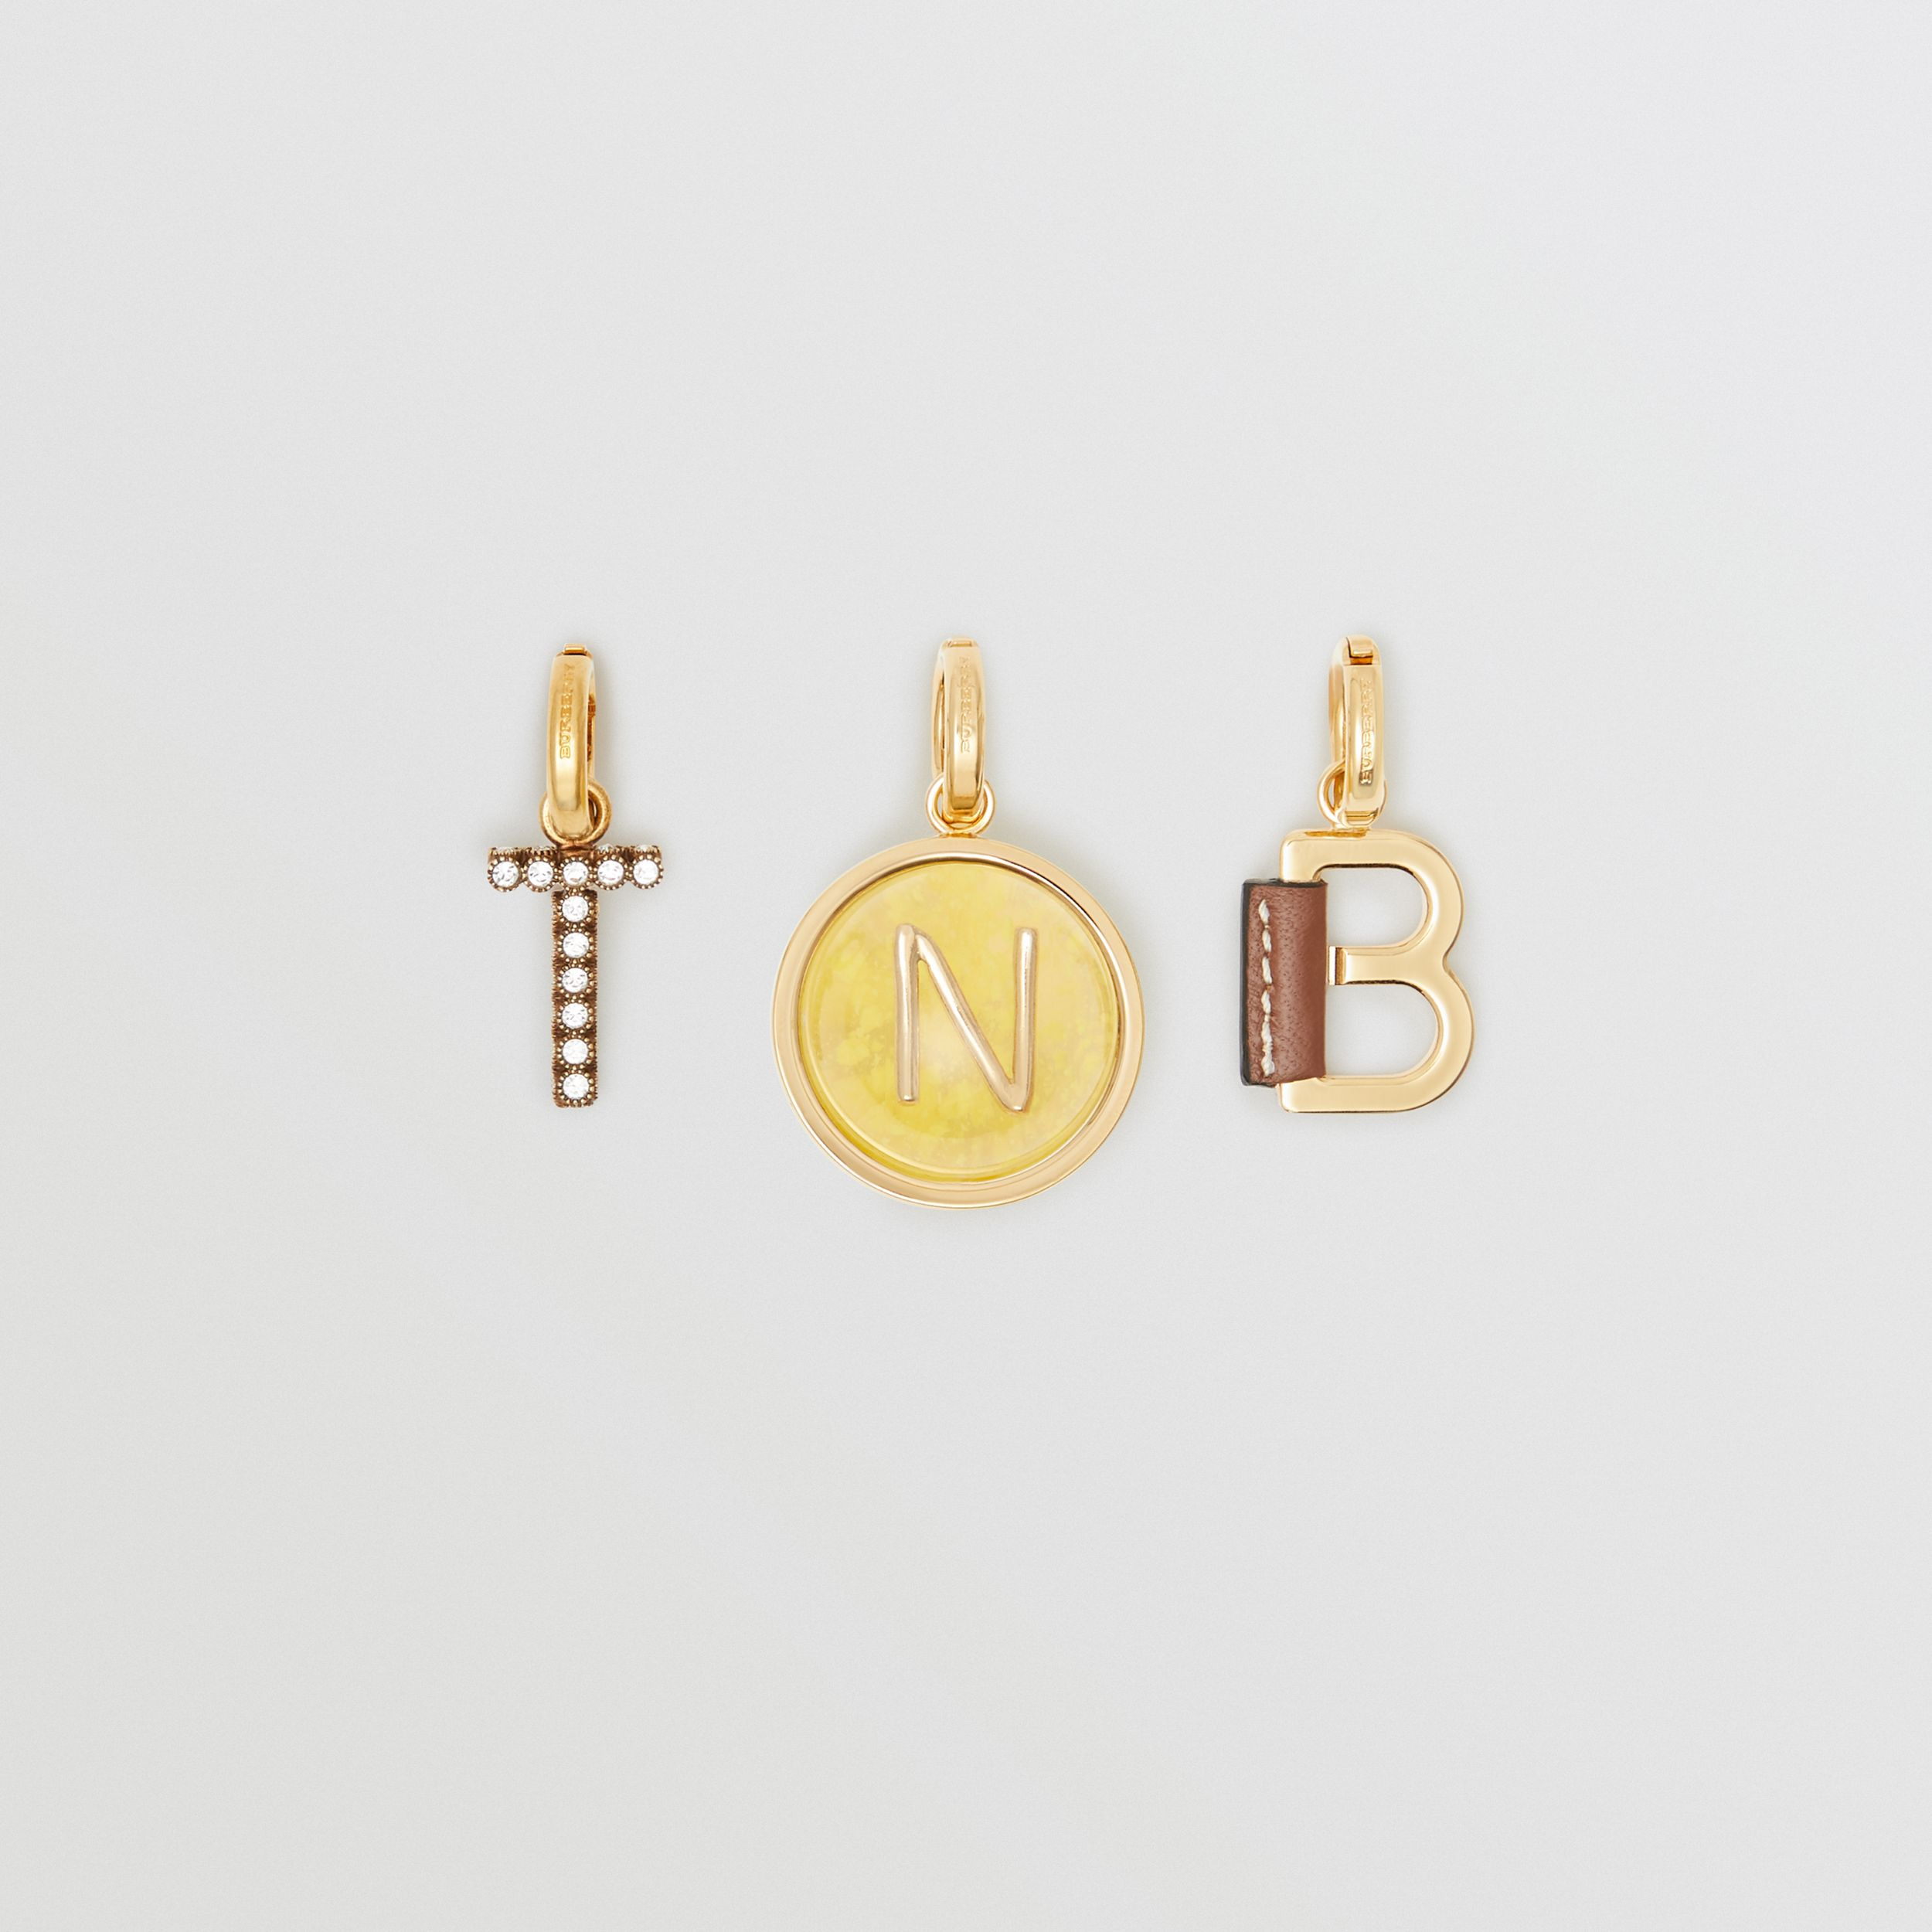 Leather-wrapped 'I' Alphabet Charm in Light Gold/tan - Women | Burberry - 2